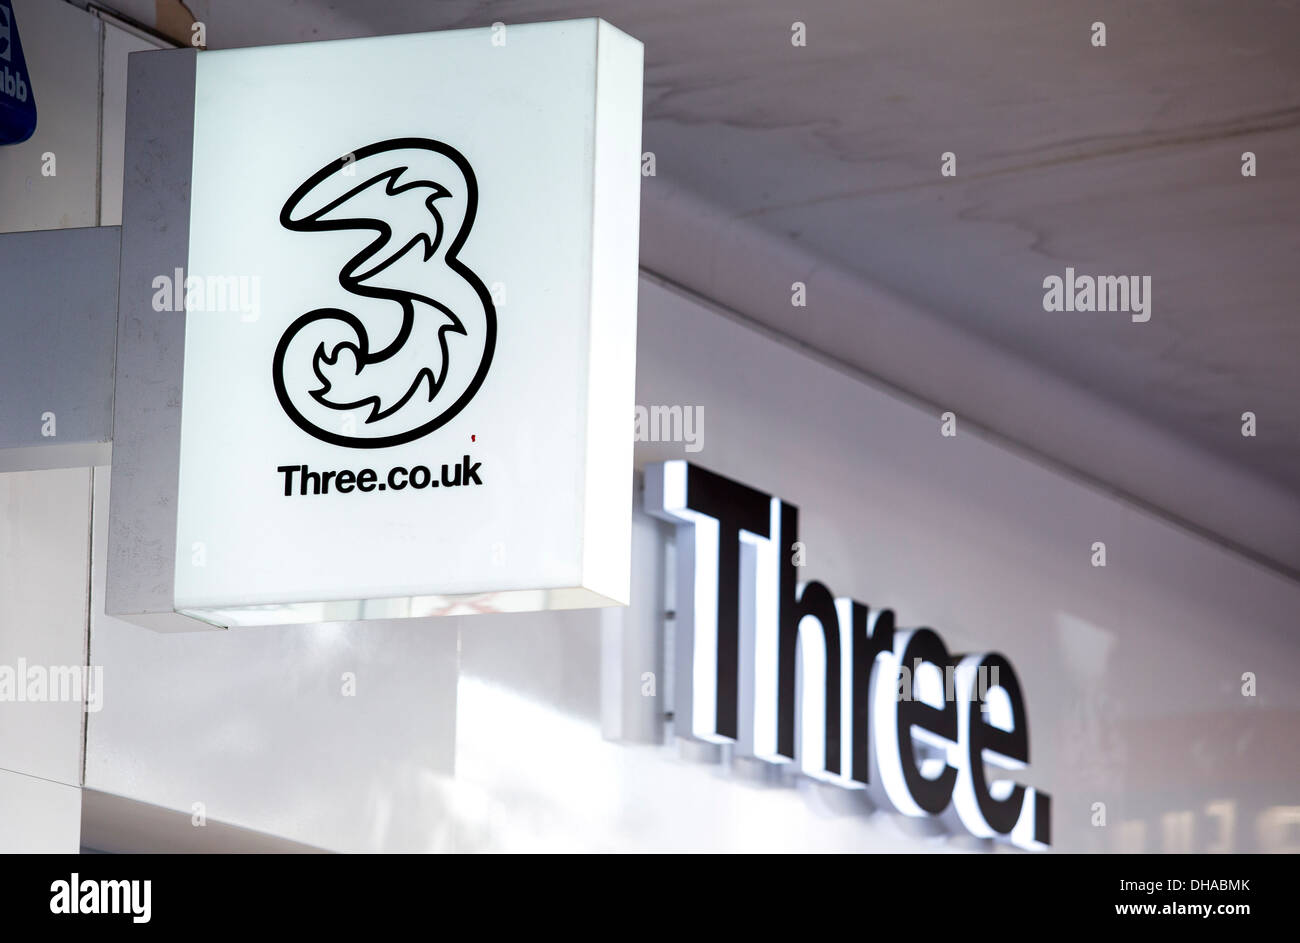 04/11/2013 Three. Mobile phone shop sign. London, UK Stock Photo